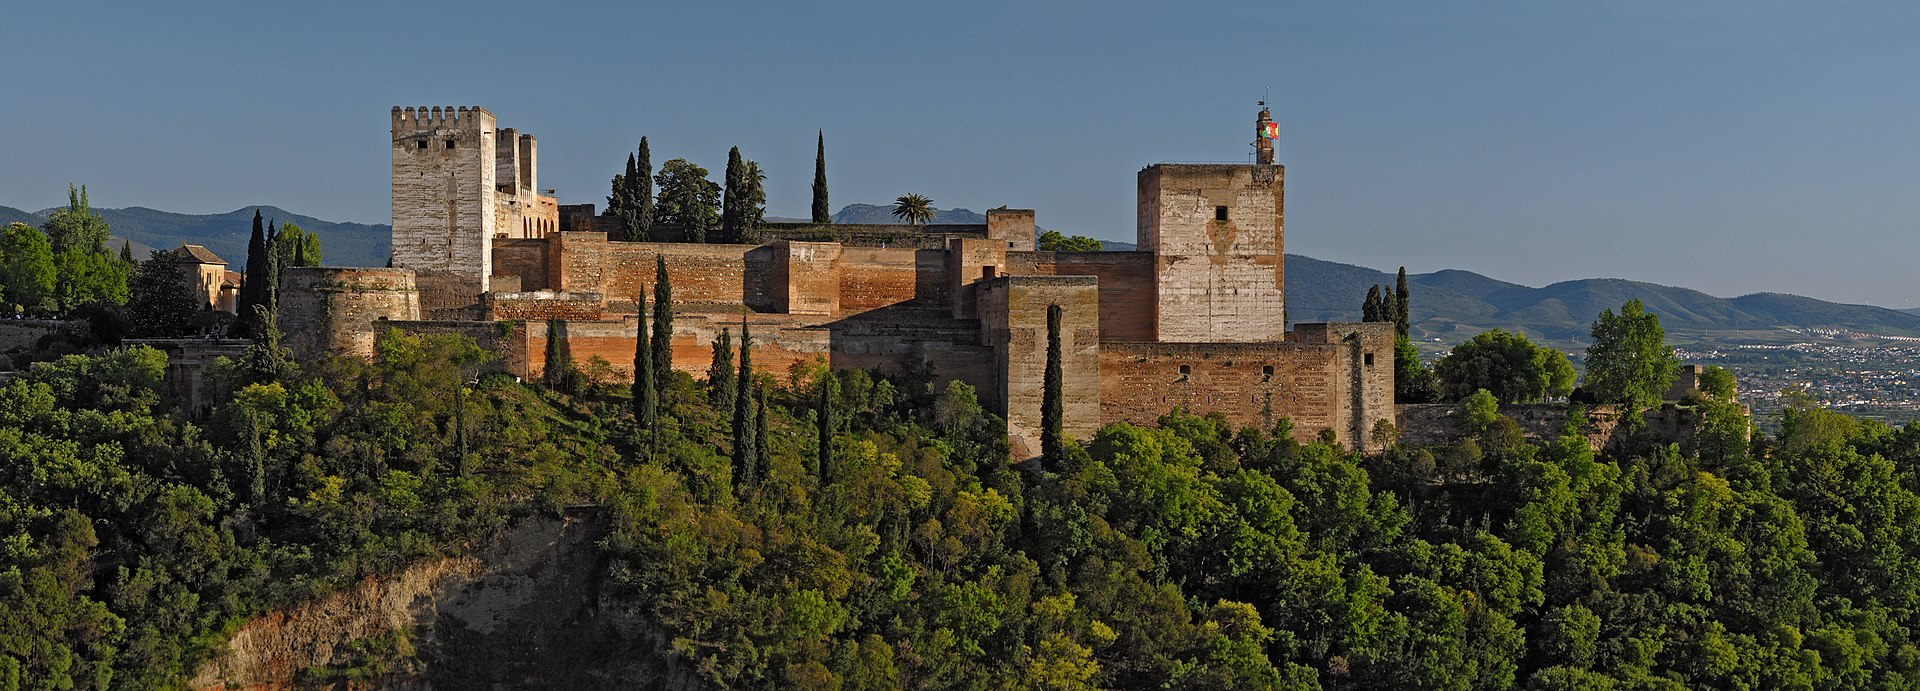 1920px-Alcazaba_of_the_Alhambra._Granada._Spain.jpg